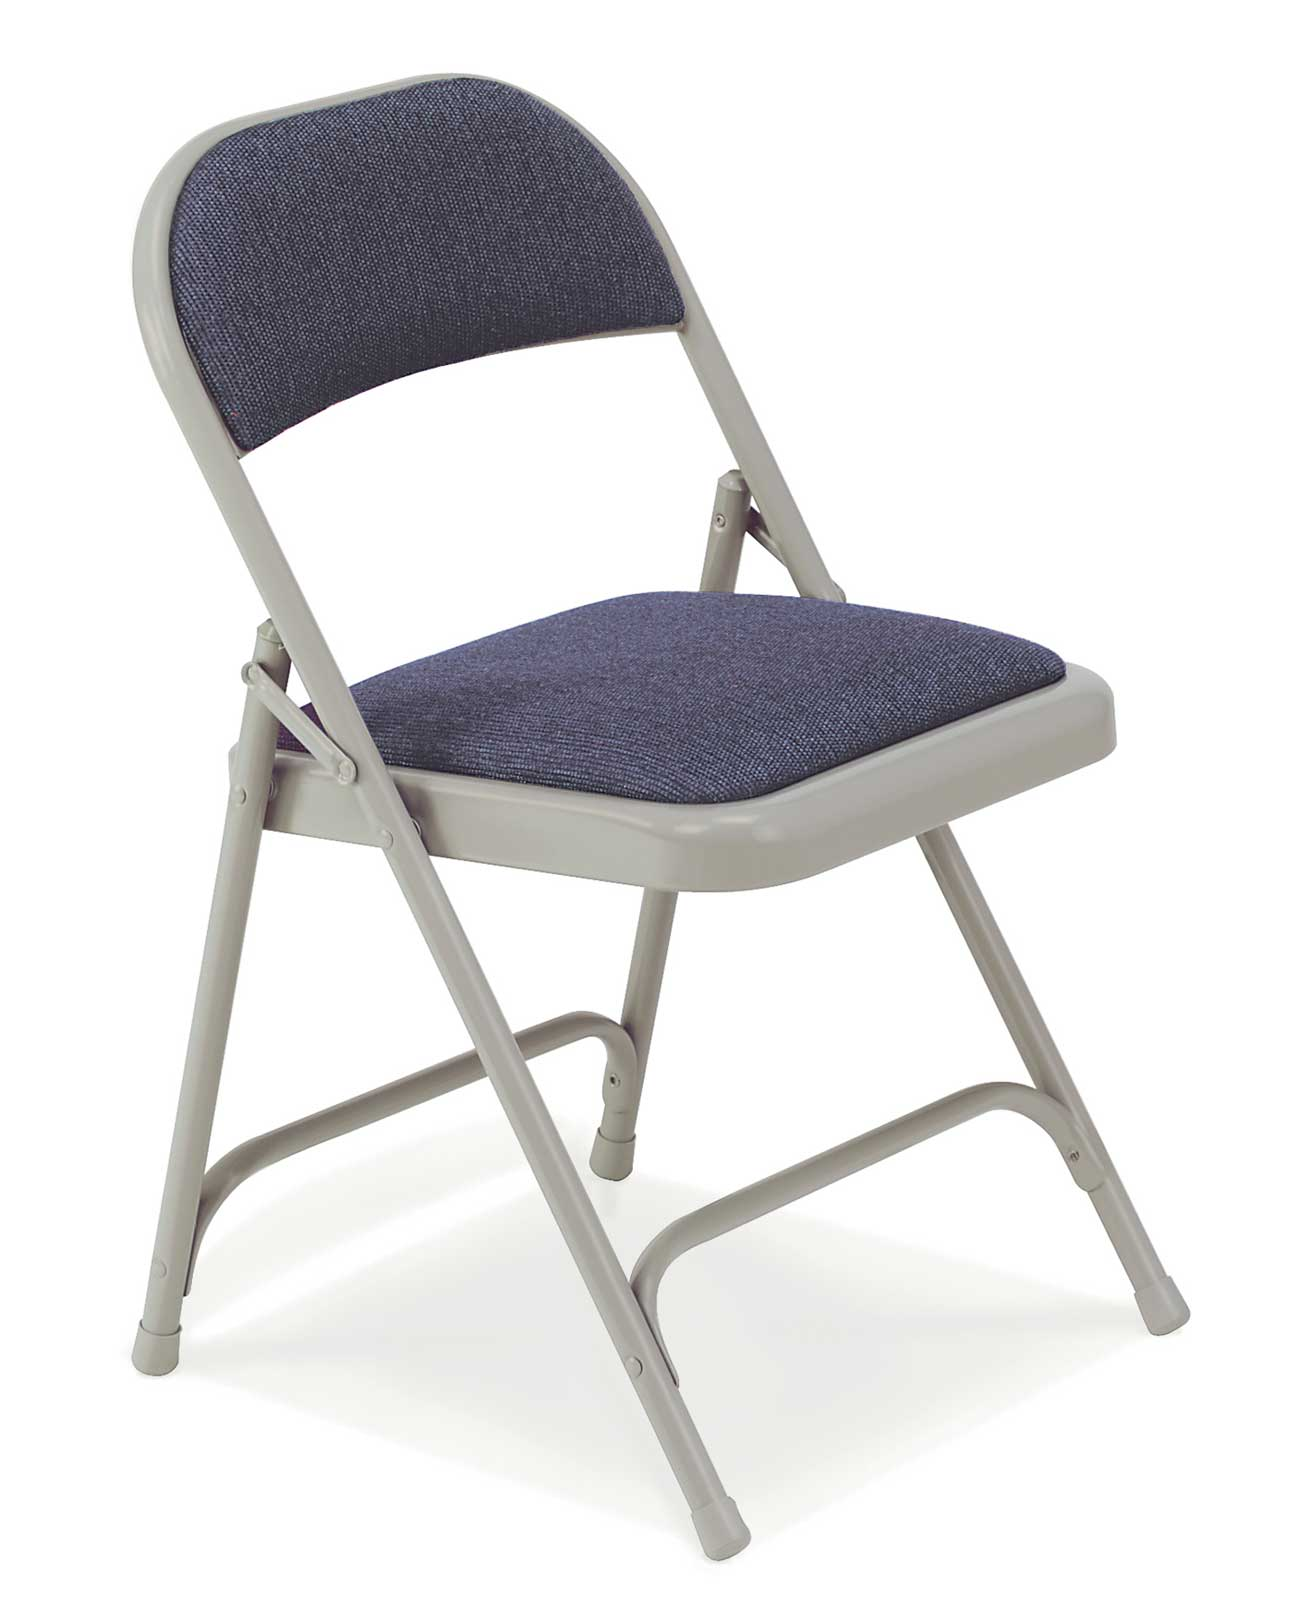 Untitled seat9295tumblrcom : Metal padded office folding chairs from seat9295.tumblr.com size 1300 x 1601 jpeg 84kB